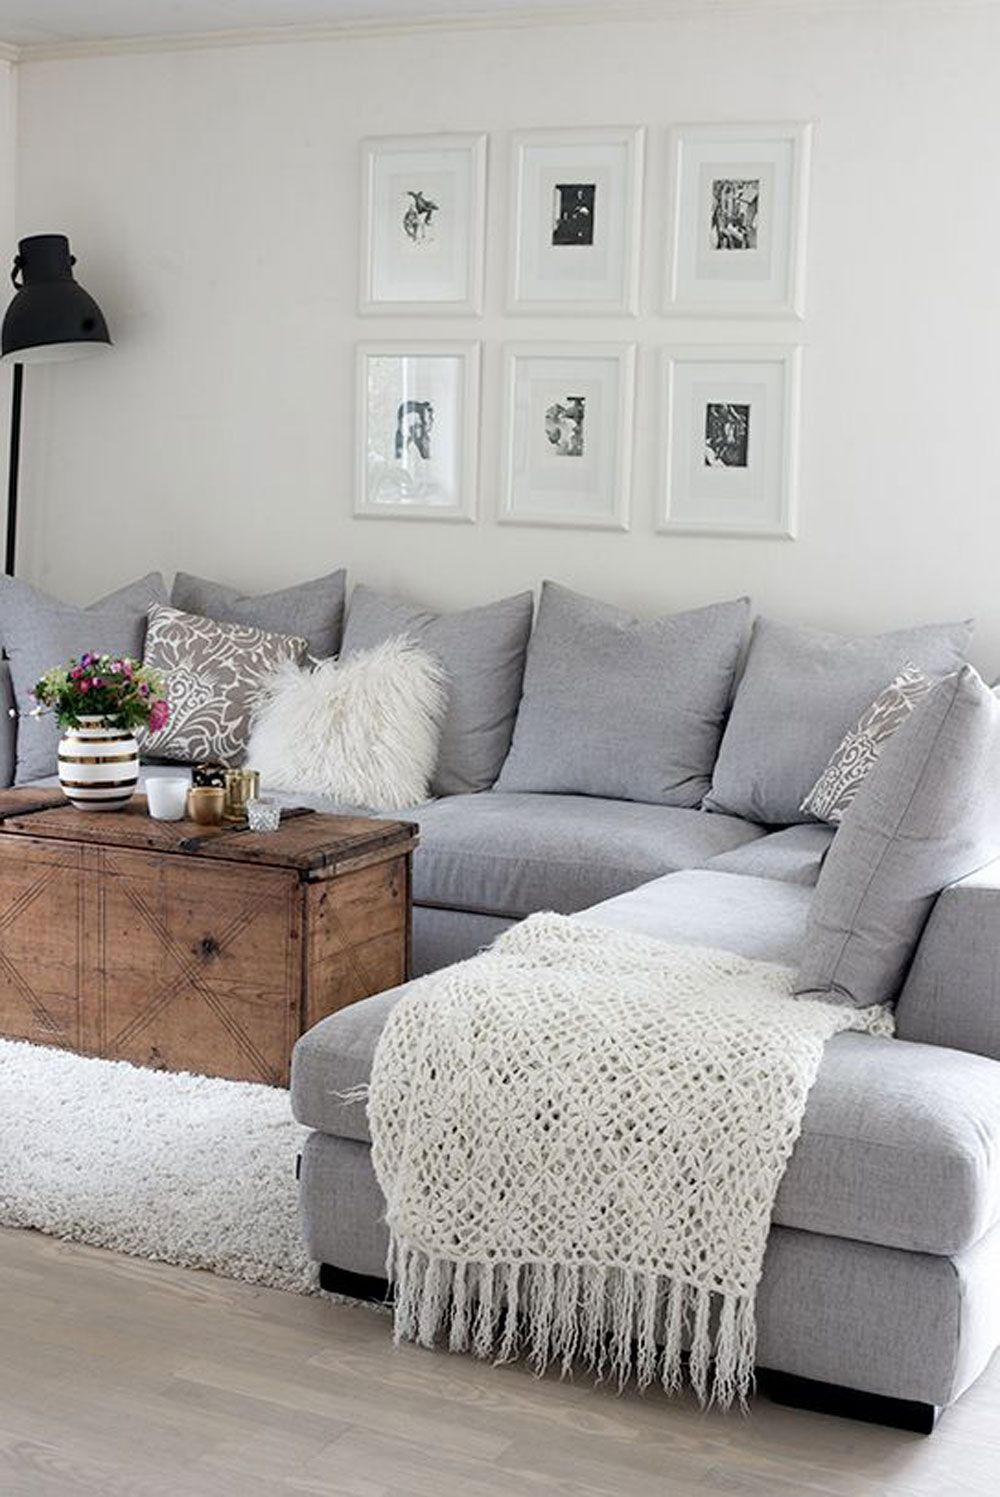 Grey Couch Decor Grey Couch Decor Ideas Grey Couch Decor Living Room Living Room Decor Apartment Small Living Room Decor Apartment Living Room